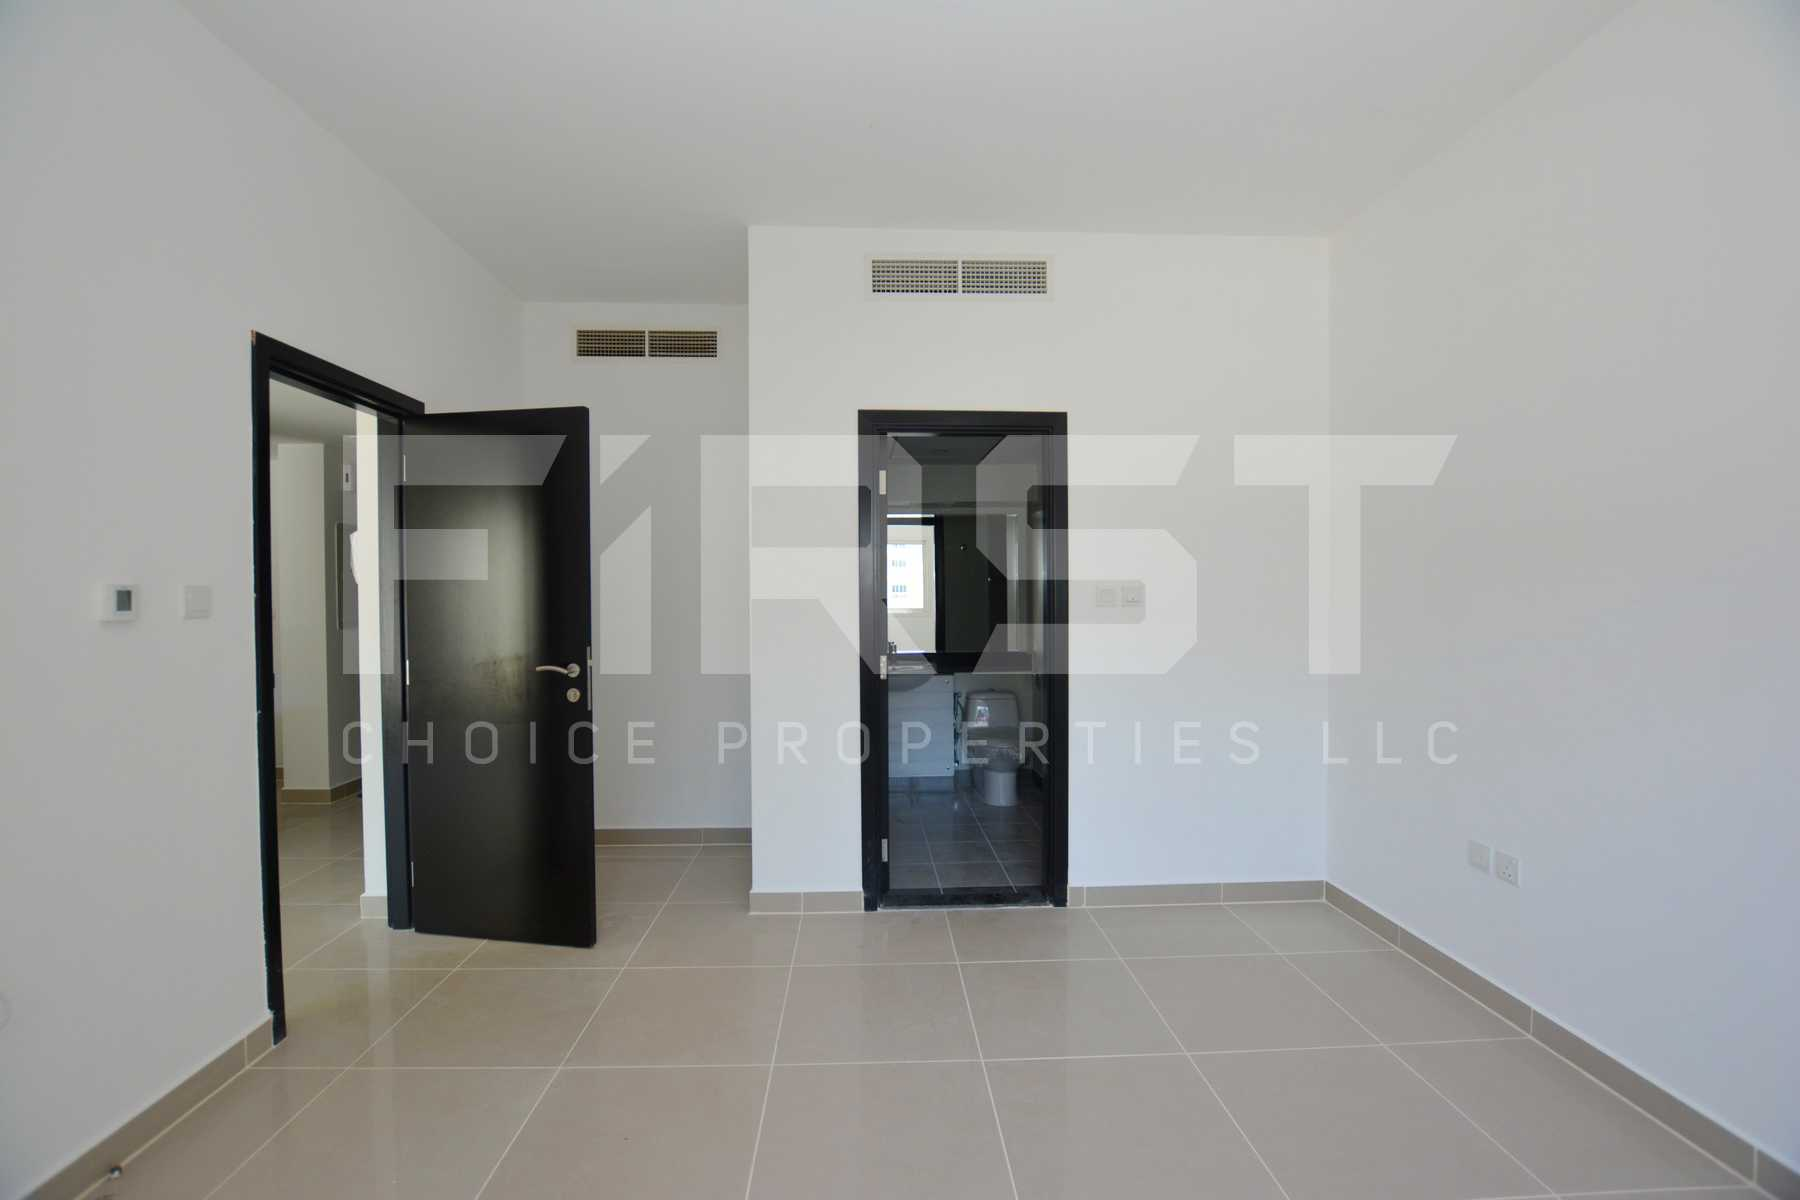 Internal Photo of 1 Bedroom Apartment Type A in Al Reef Downtown Al Reef Abu Dhabi UAE 74 sq.m 796 sq.ft (3).jpg